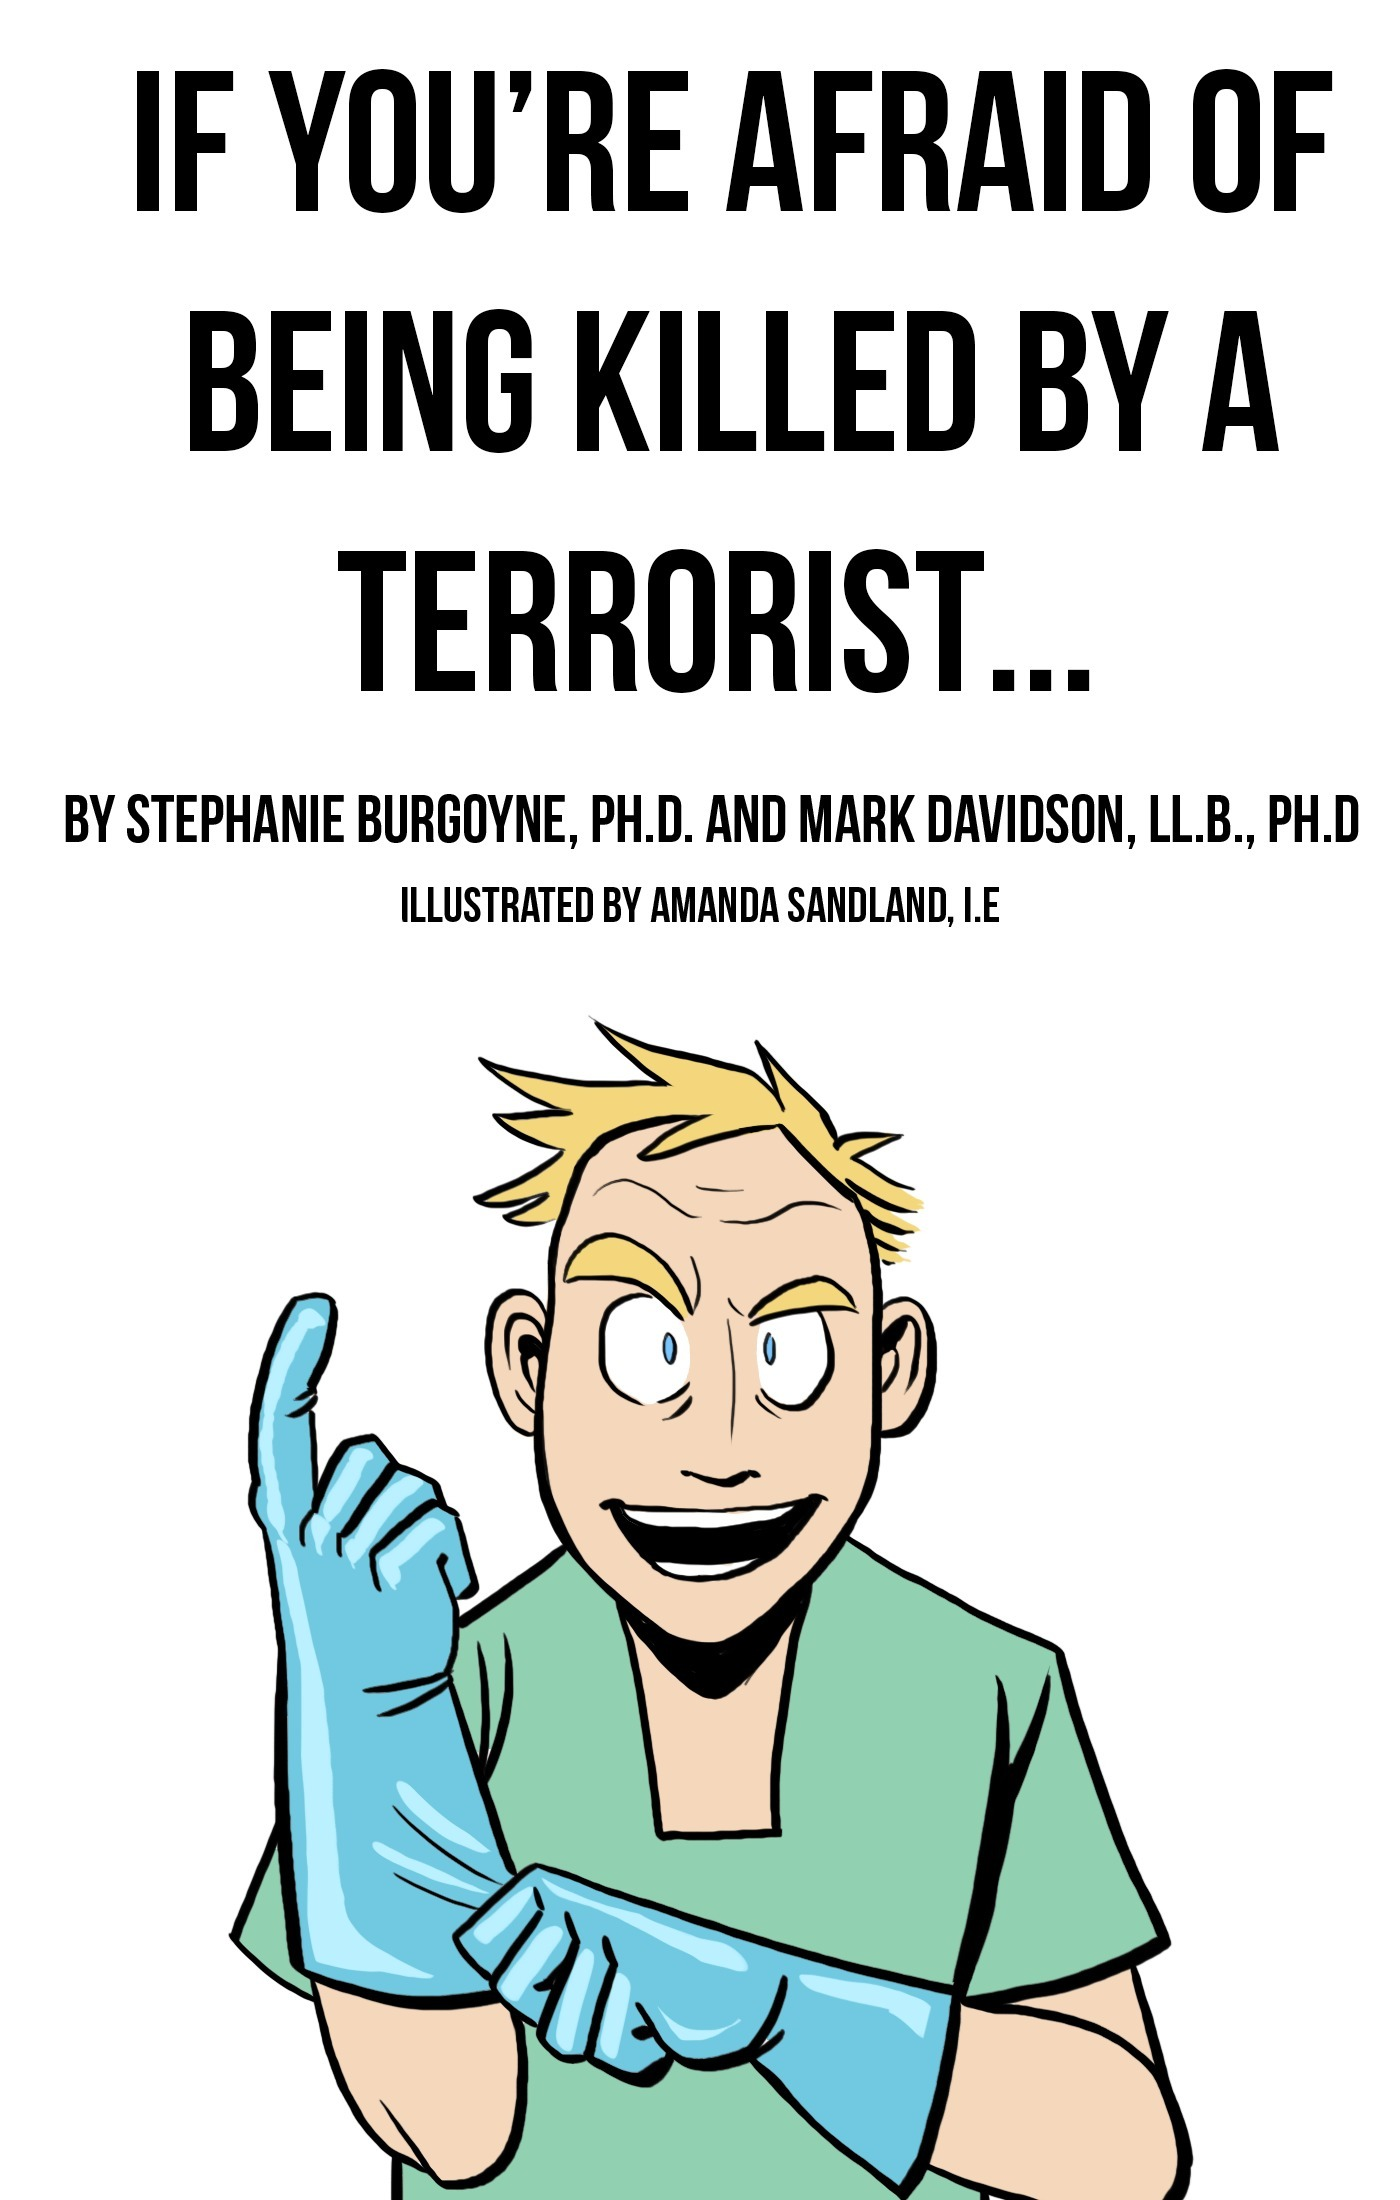 If Youre Afraid of Being Killed  by  a Terrorist... by Mark Davidson